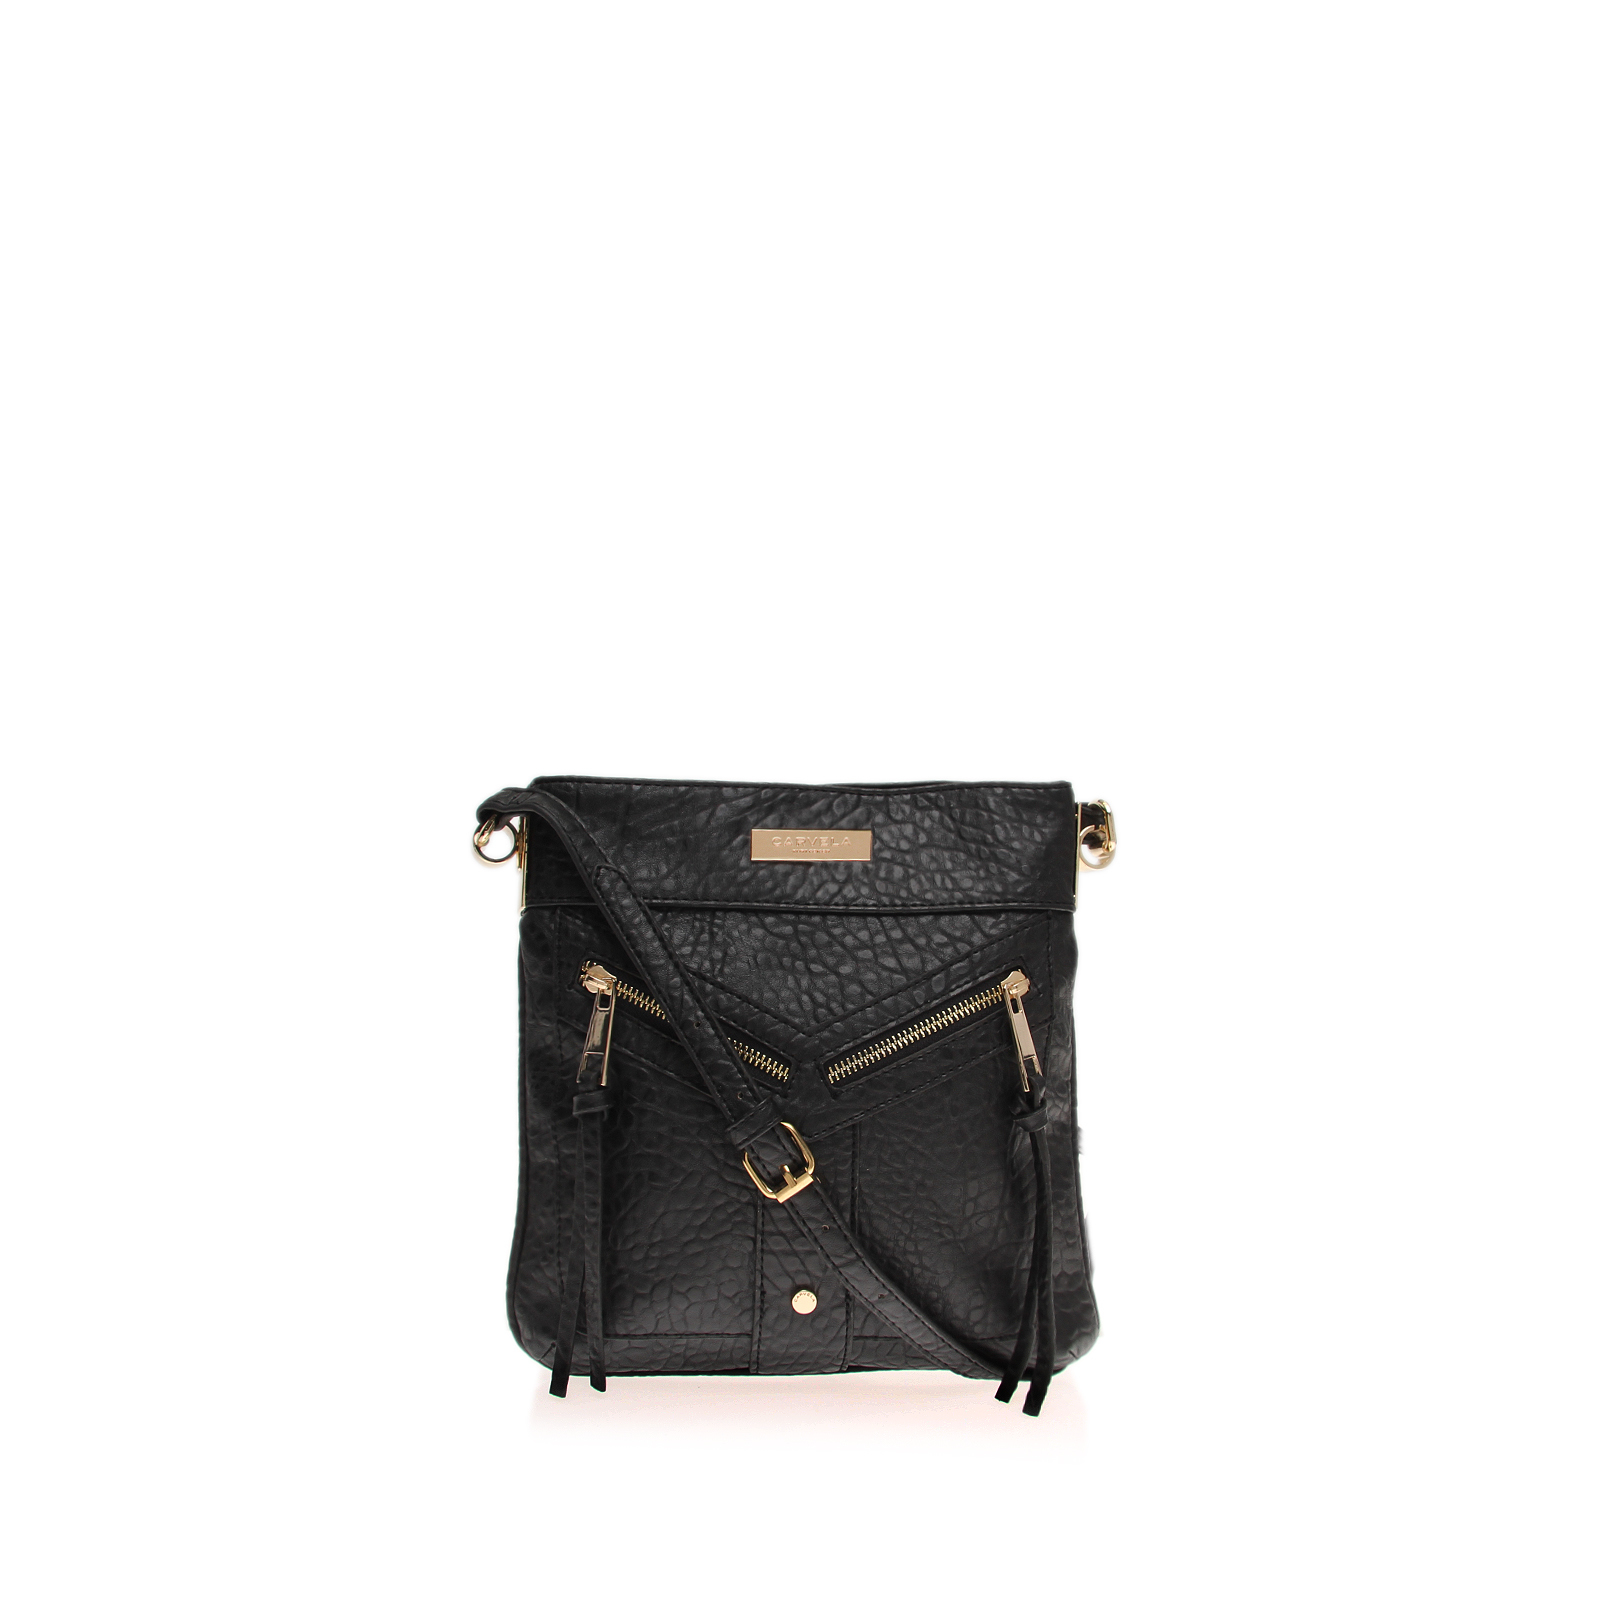 AALIYAH MESSENGER BAG